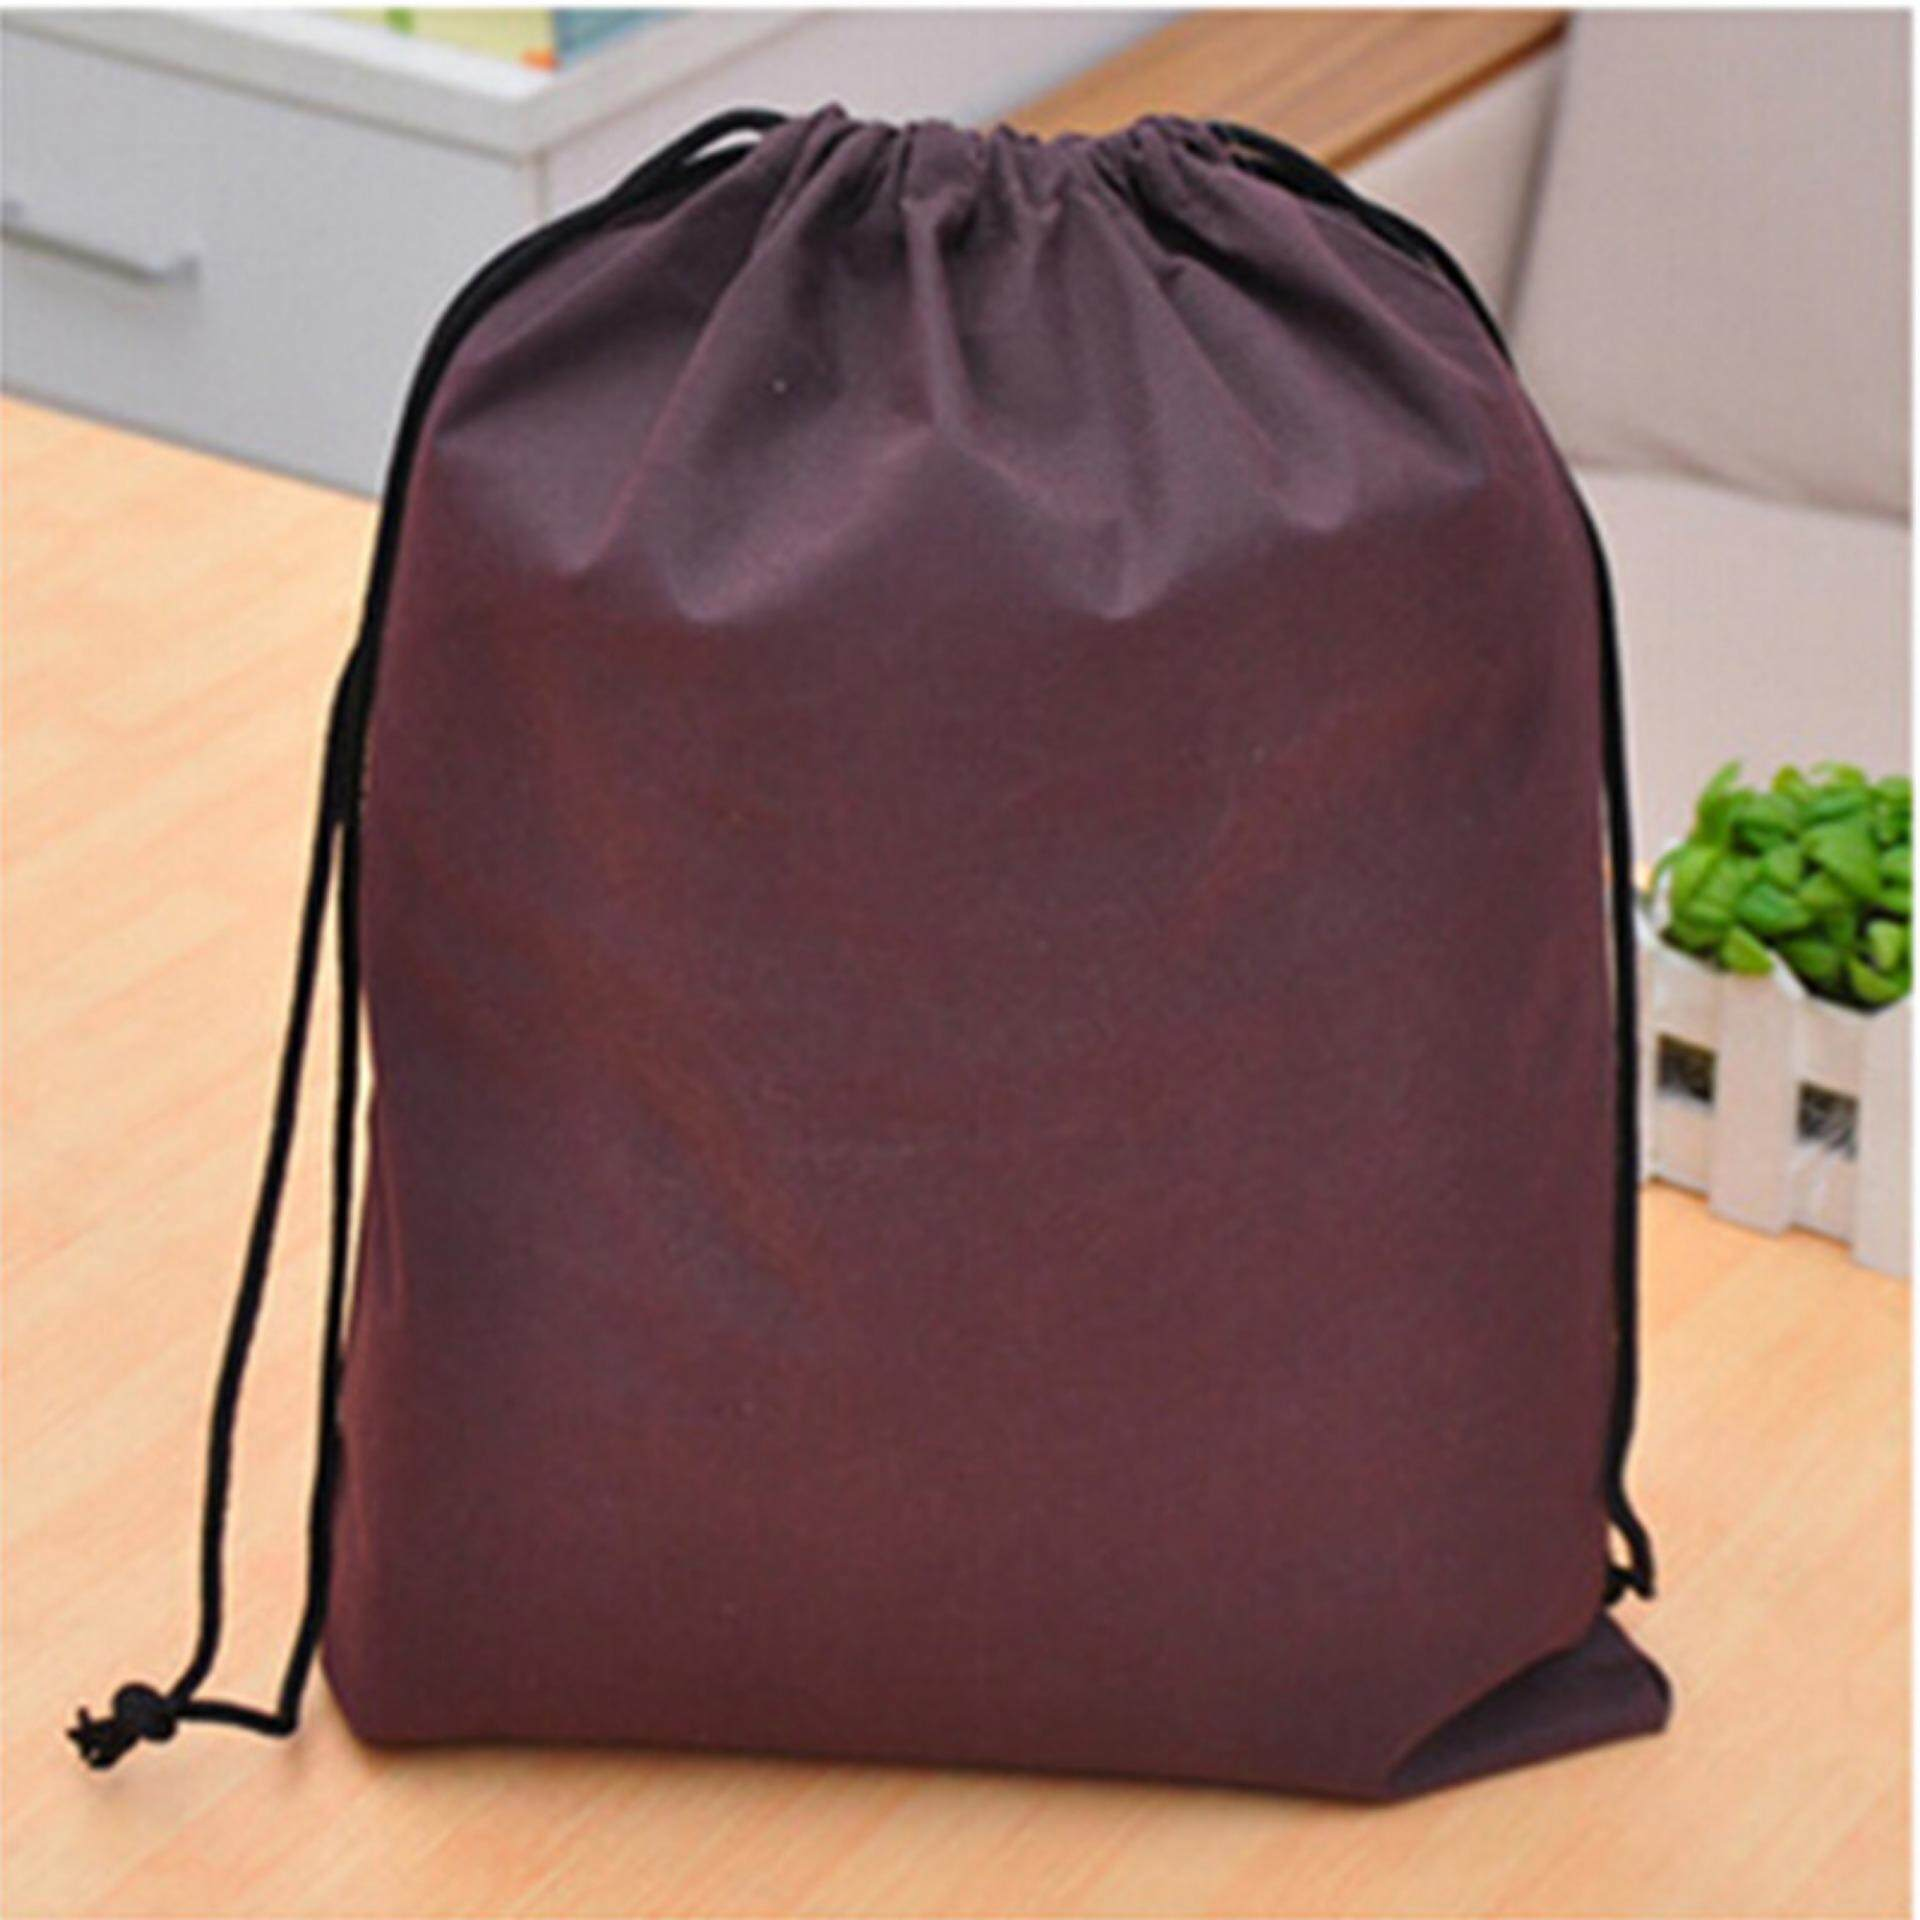 6 Color Portable Shoes Bag Travel Storage Pouch Drawstring Dust Bags Non-Woven